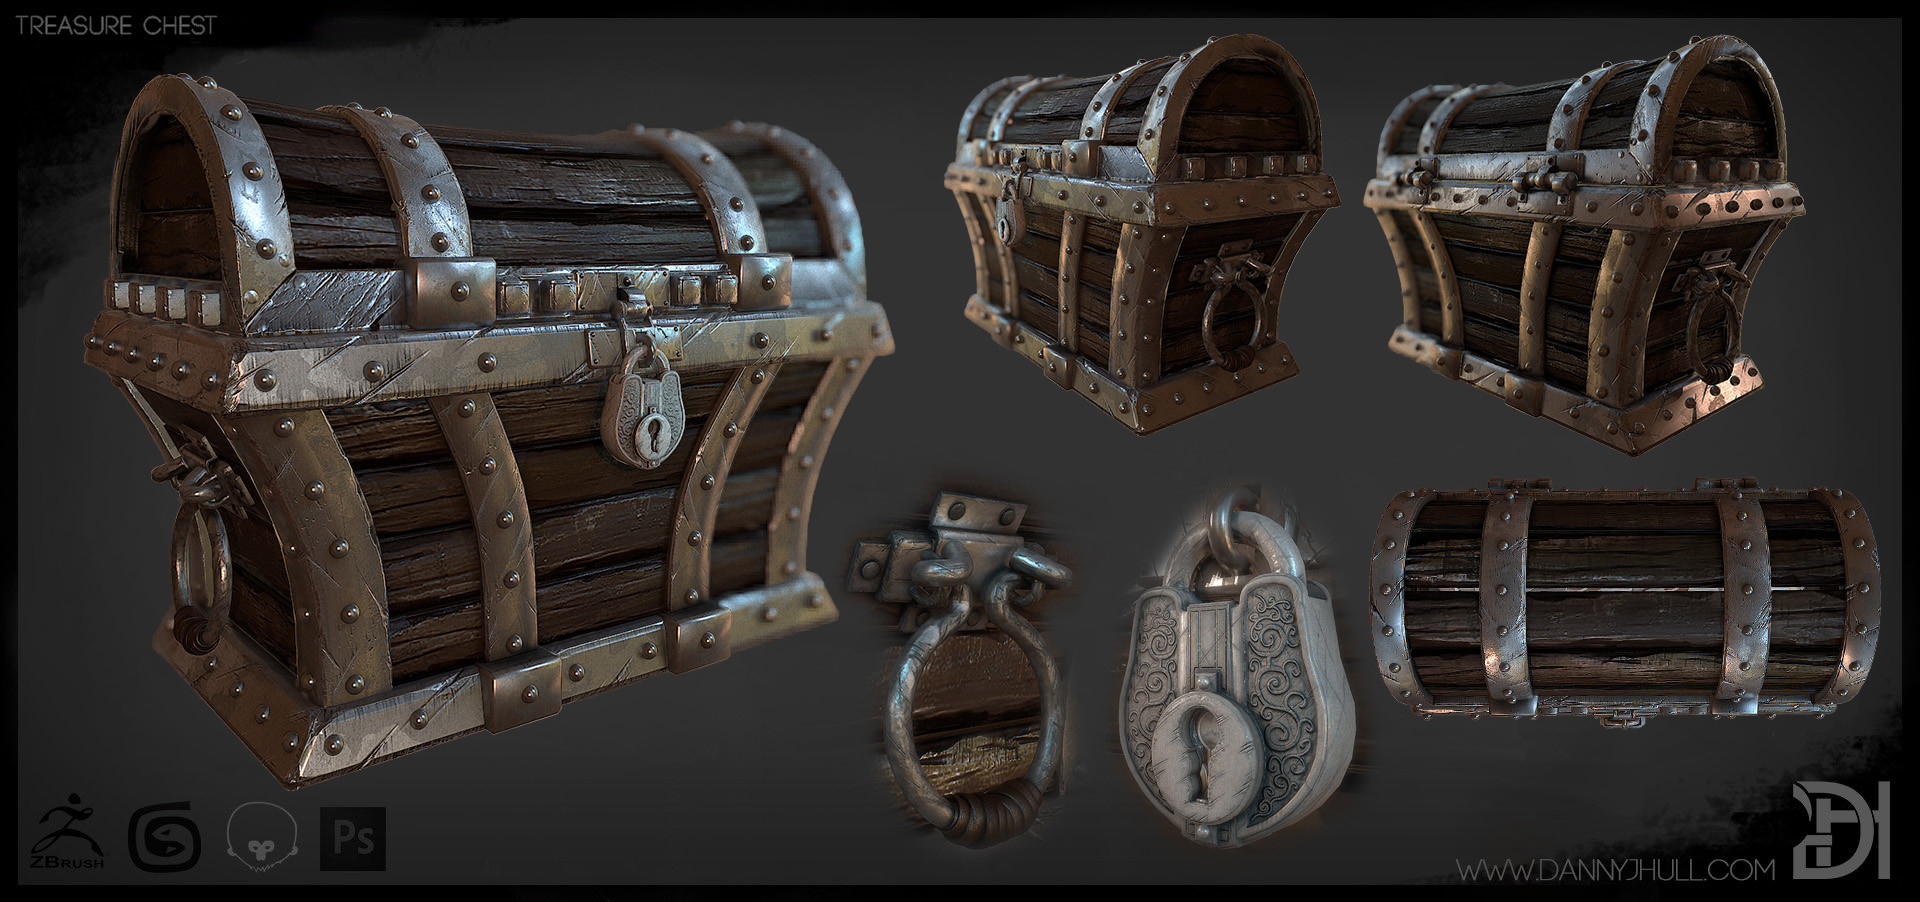 Daniel hull treasure chest